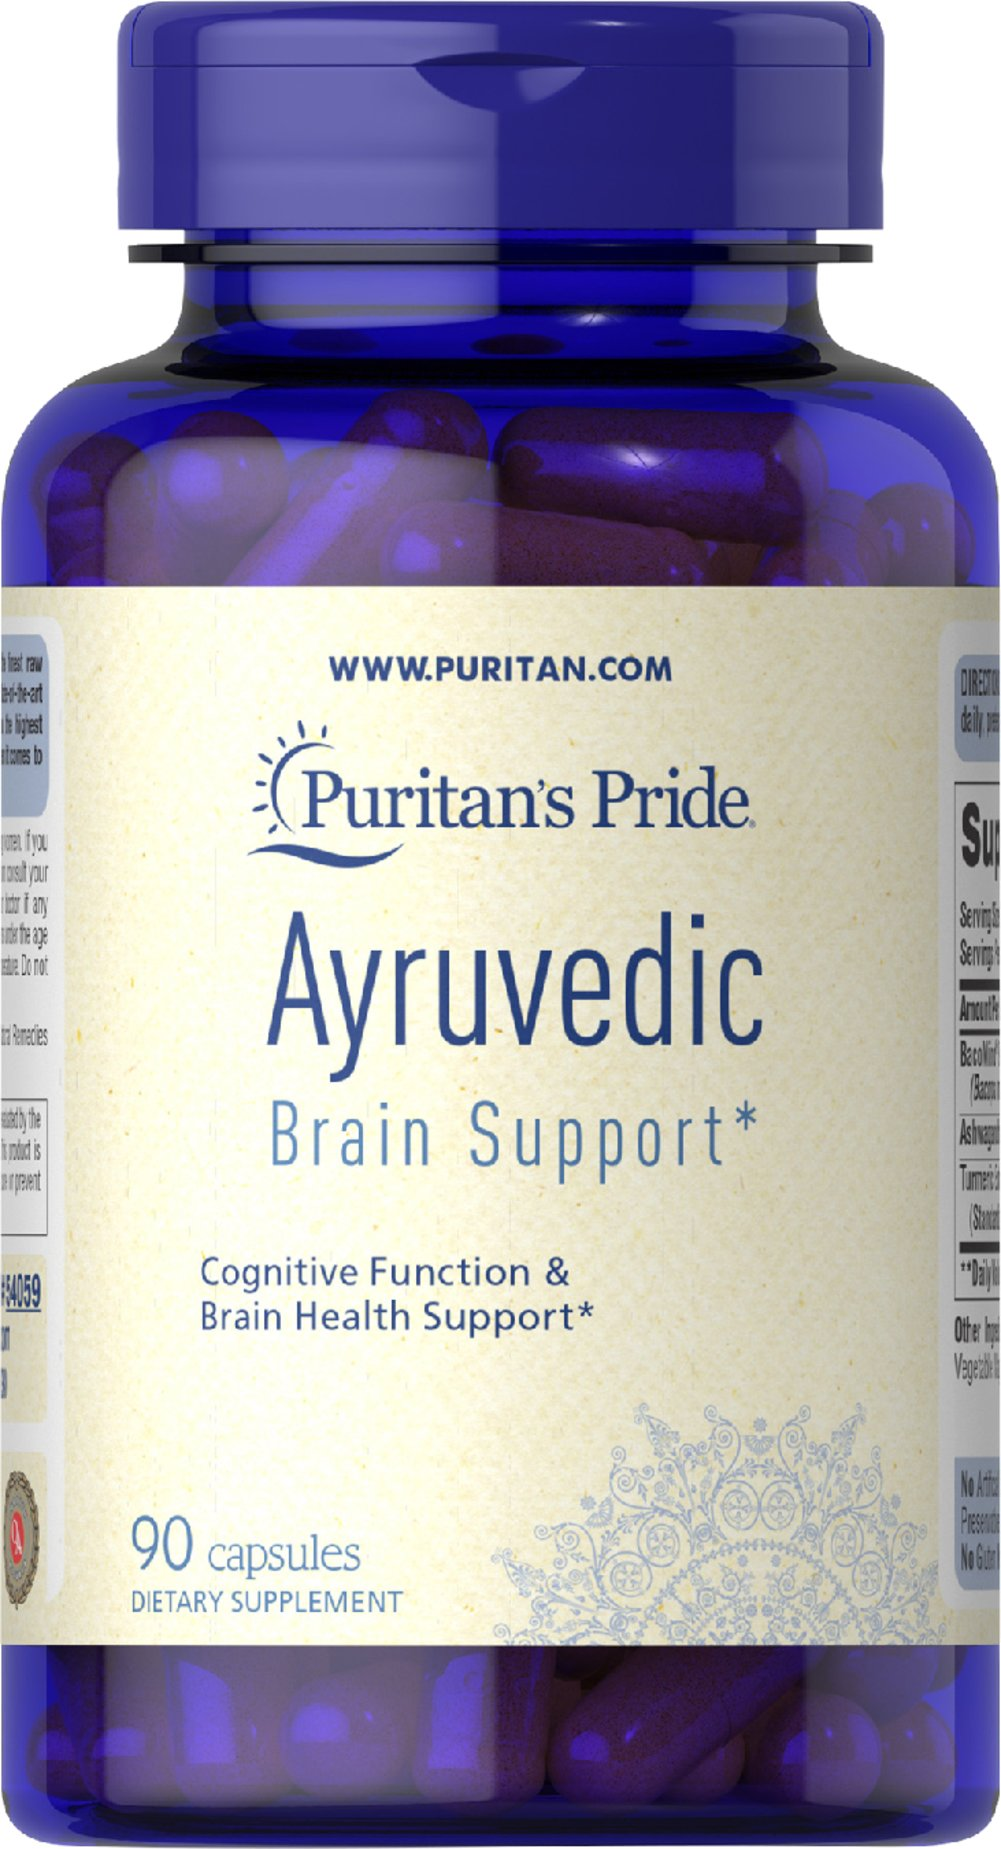 Ayurvedic Brain Health Support Bacopa, Ashwagandha, Turmeric <ul><li>450 mg of BacoMind® Bacopa Extract to Support Cognitive Function and Brain Health**</li><li>450 mg of Ashwagandha Root</li><li>100 mg of Curcuminoids, Plant Based Antioxidants from Turmeric</li></ul><p></p><p>BacoMind® is derived from the plant Bacopa monnieri Linn. This important Ayurvedic herb supports brain health.**   Ashwaganda root is known as the